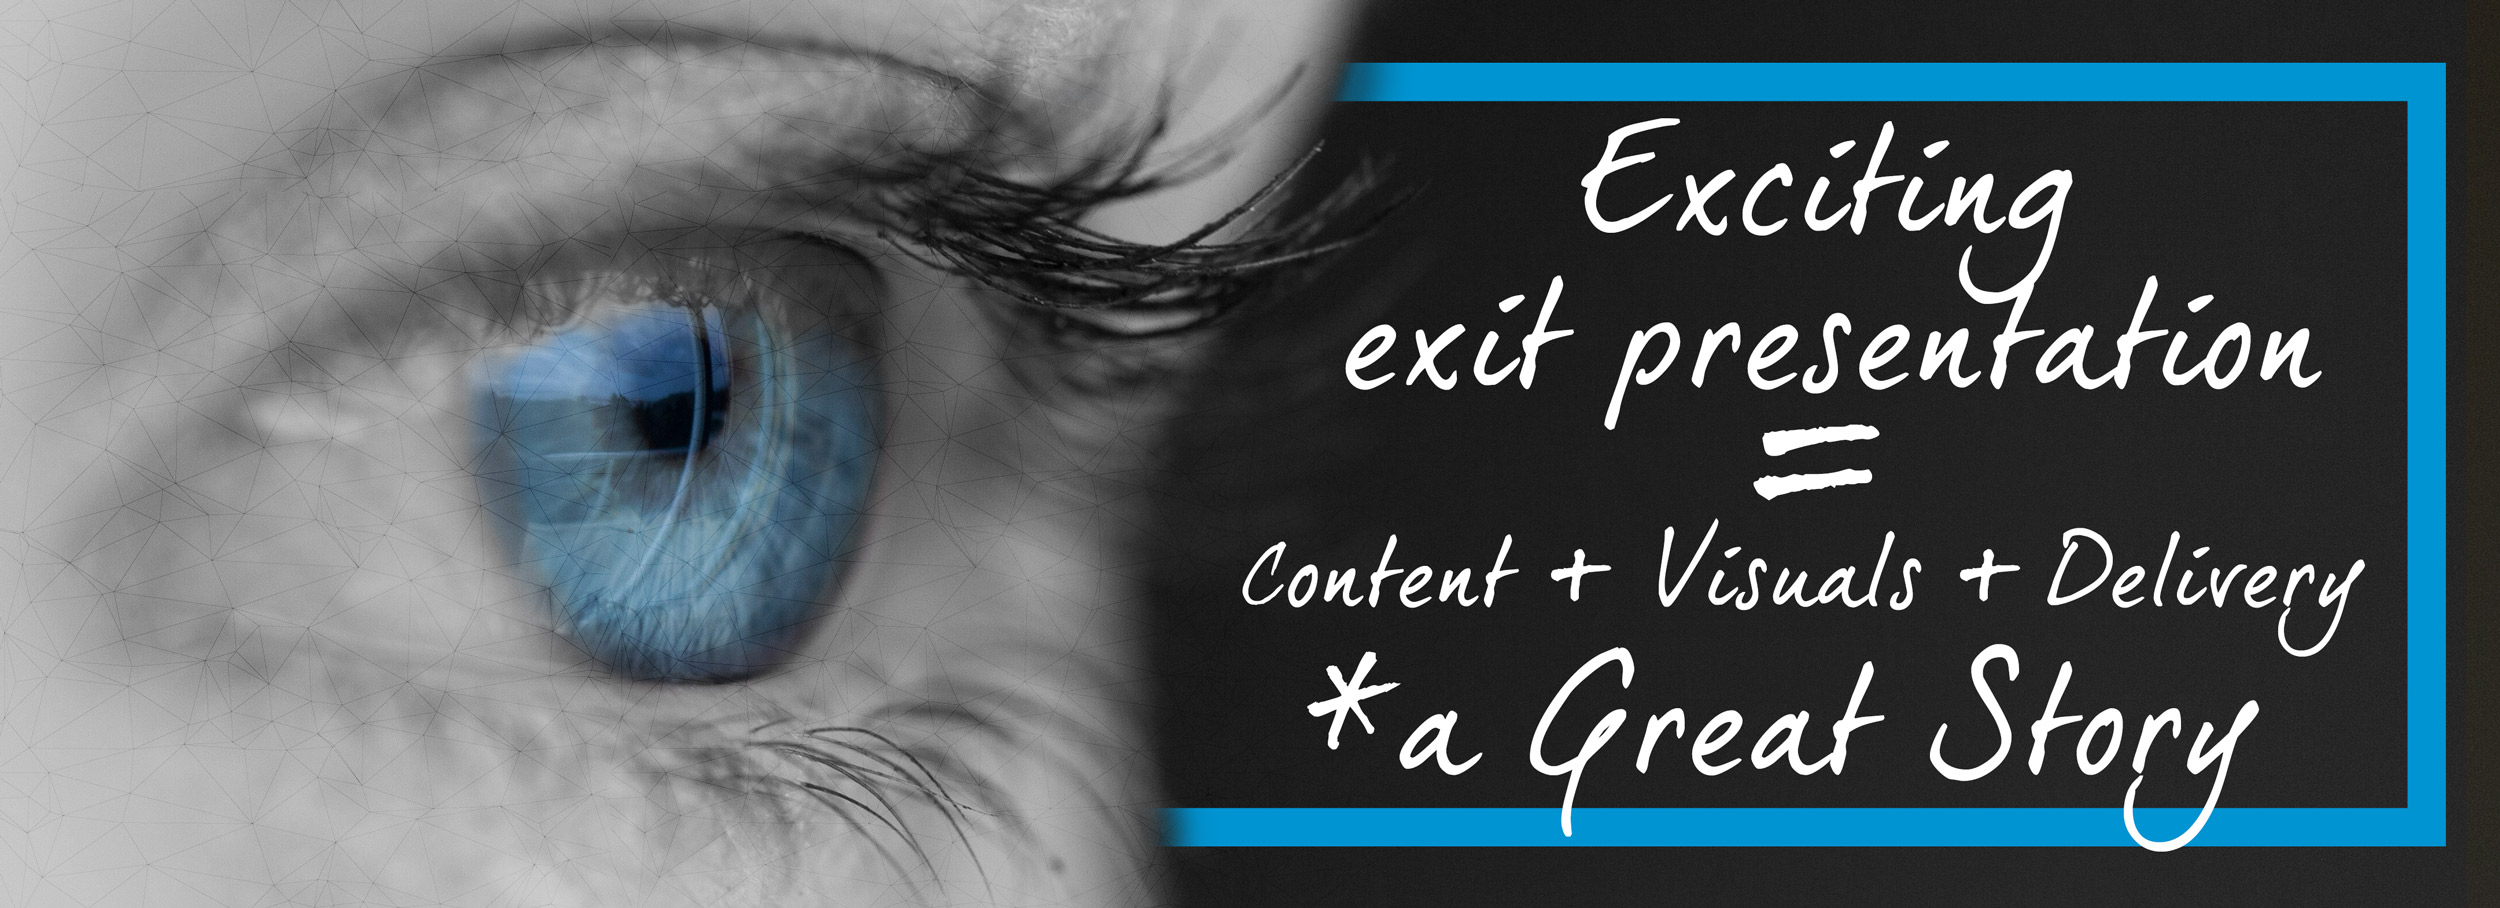 Method for exciting exit presentation